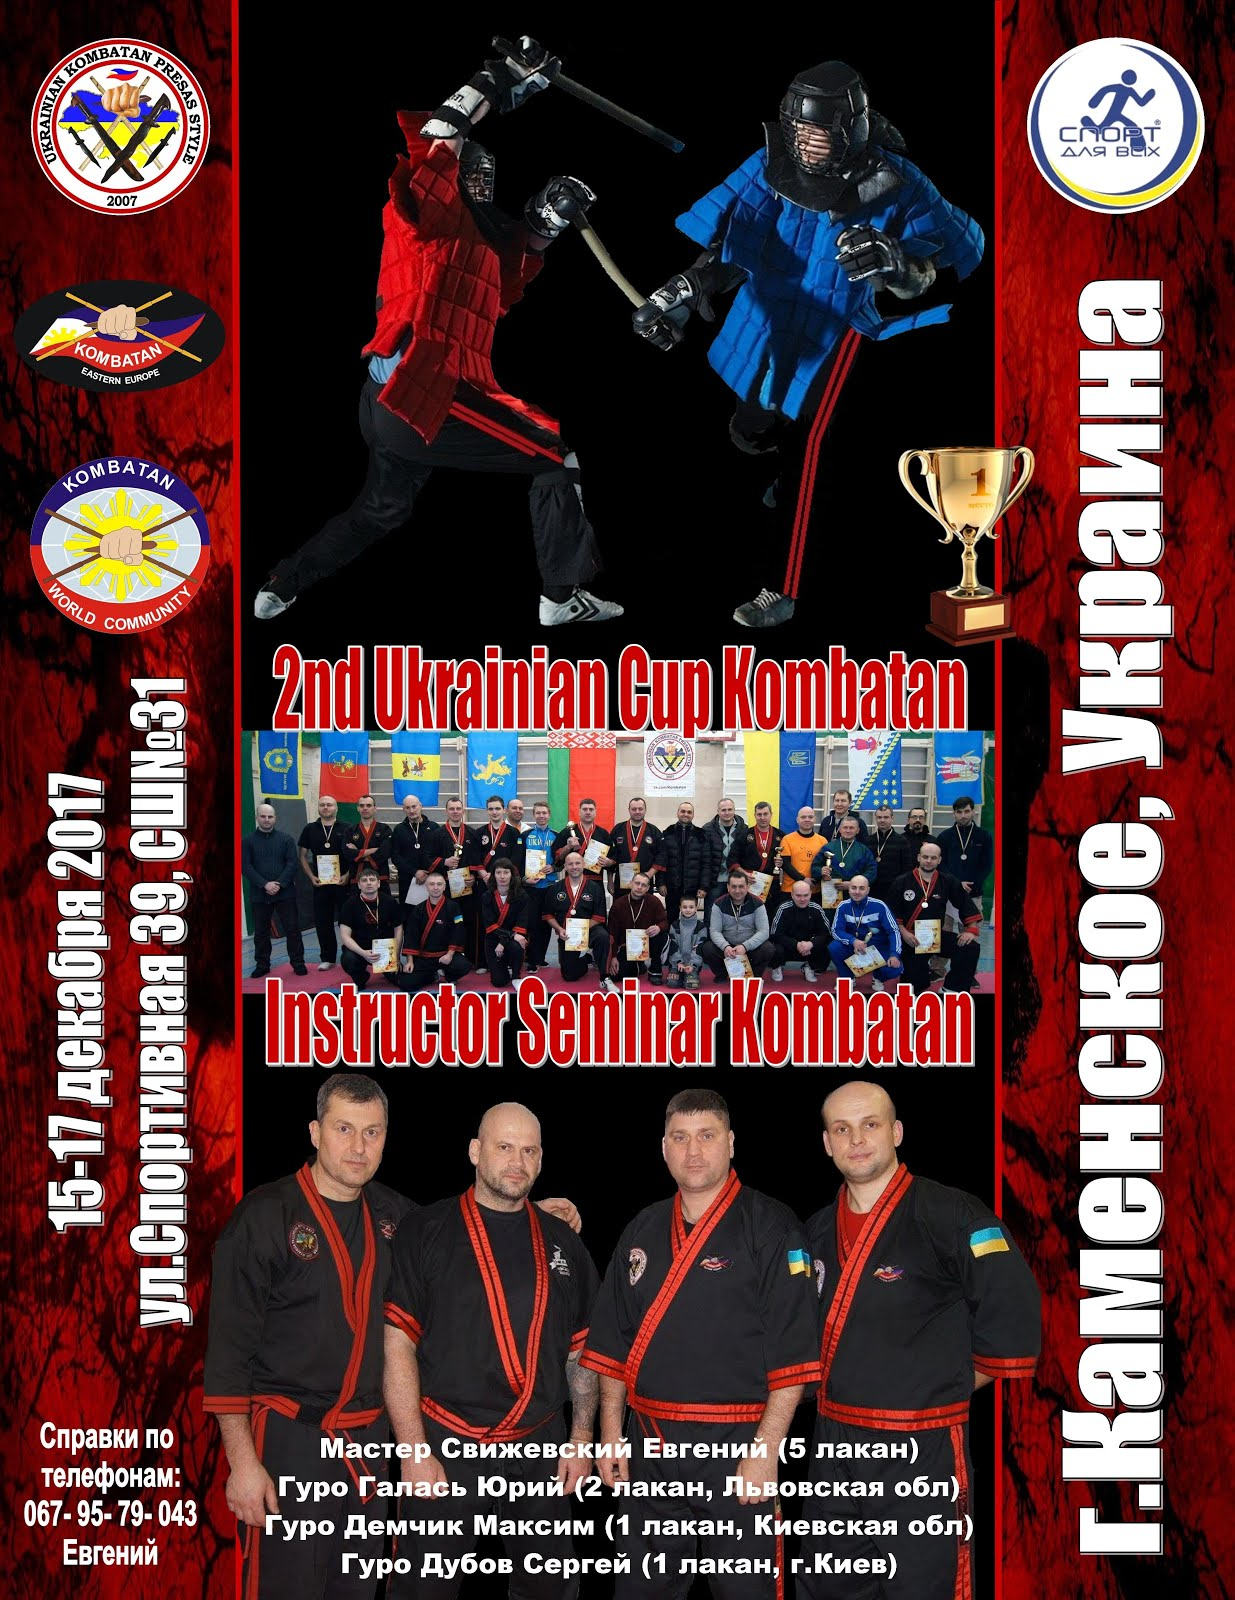 2nd Ukrainian Cup Kombatаn. Instructor Seminar Kombatan